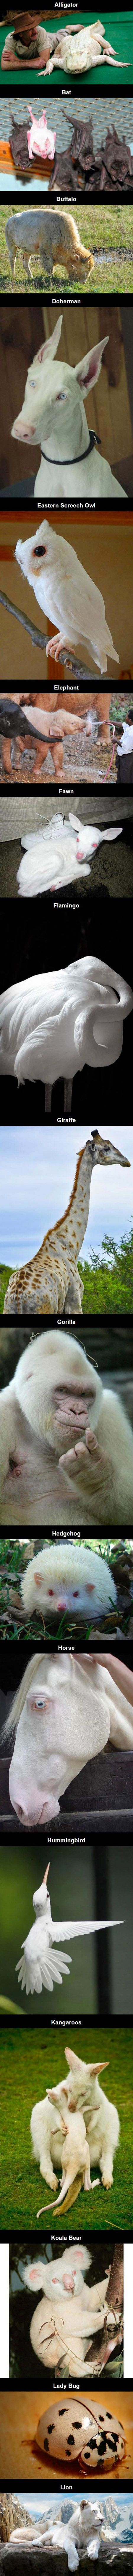 17 Rare Albino Animals. . .  Not sure about that.  The giraffe does not look albino. A few other animals also do not have the pink eyes.  Still fun to look at all the cute and pretty animals though.  :)